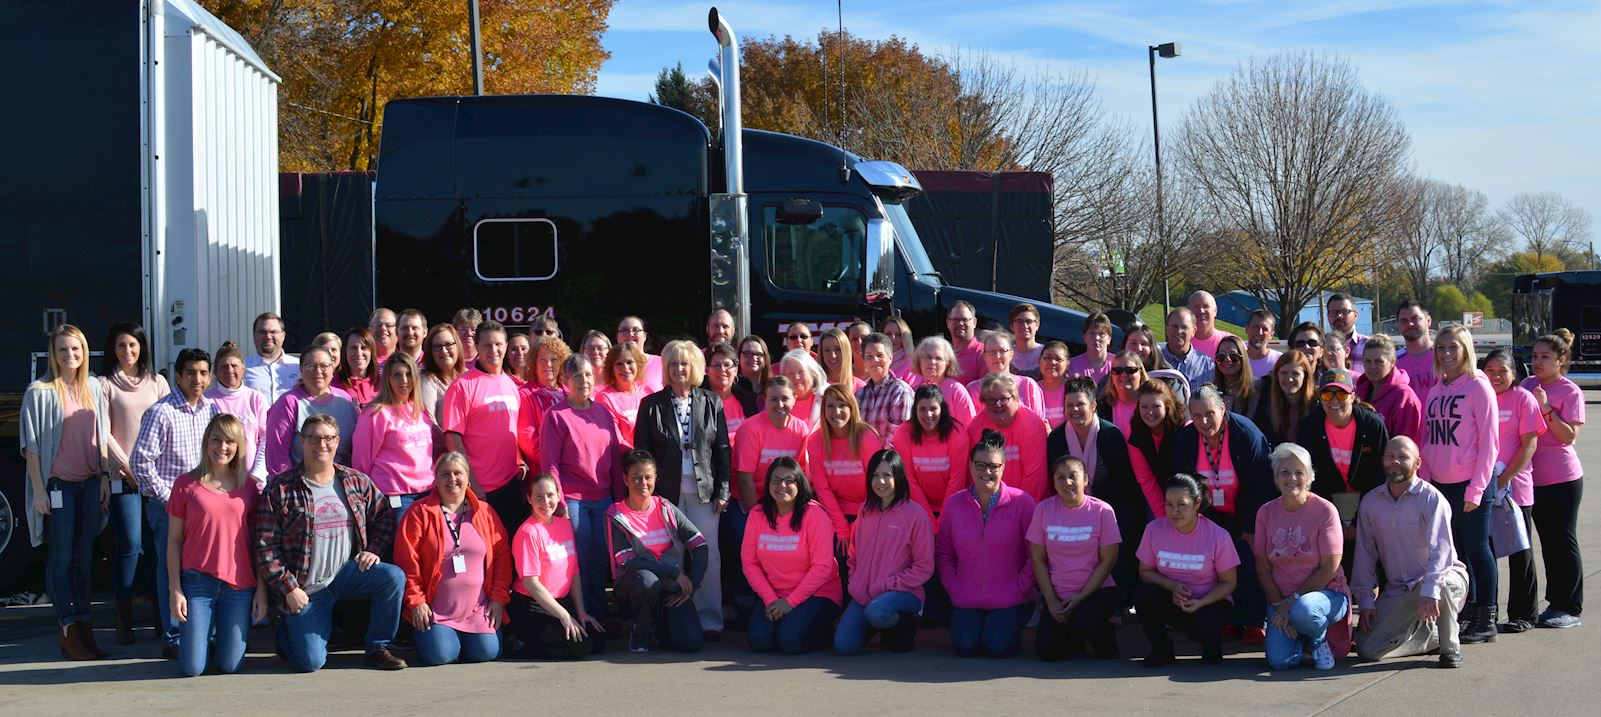 Des Moines Pink Friday